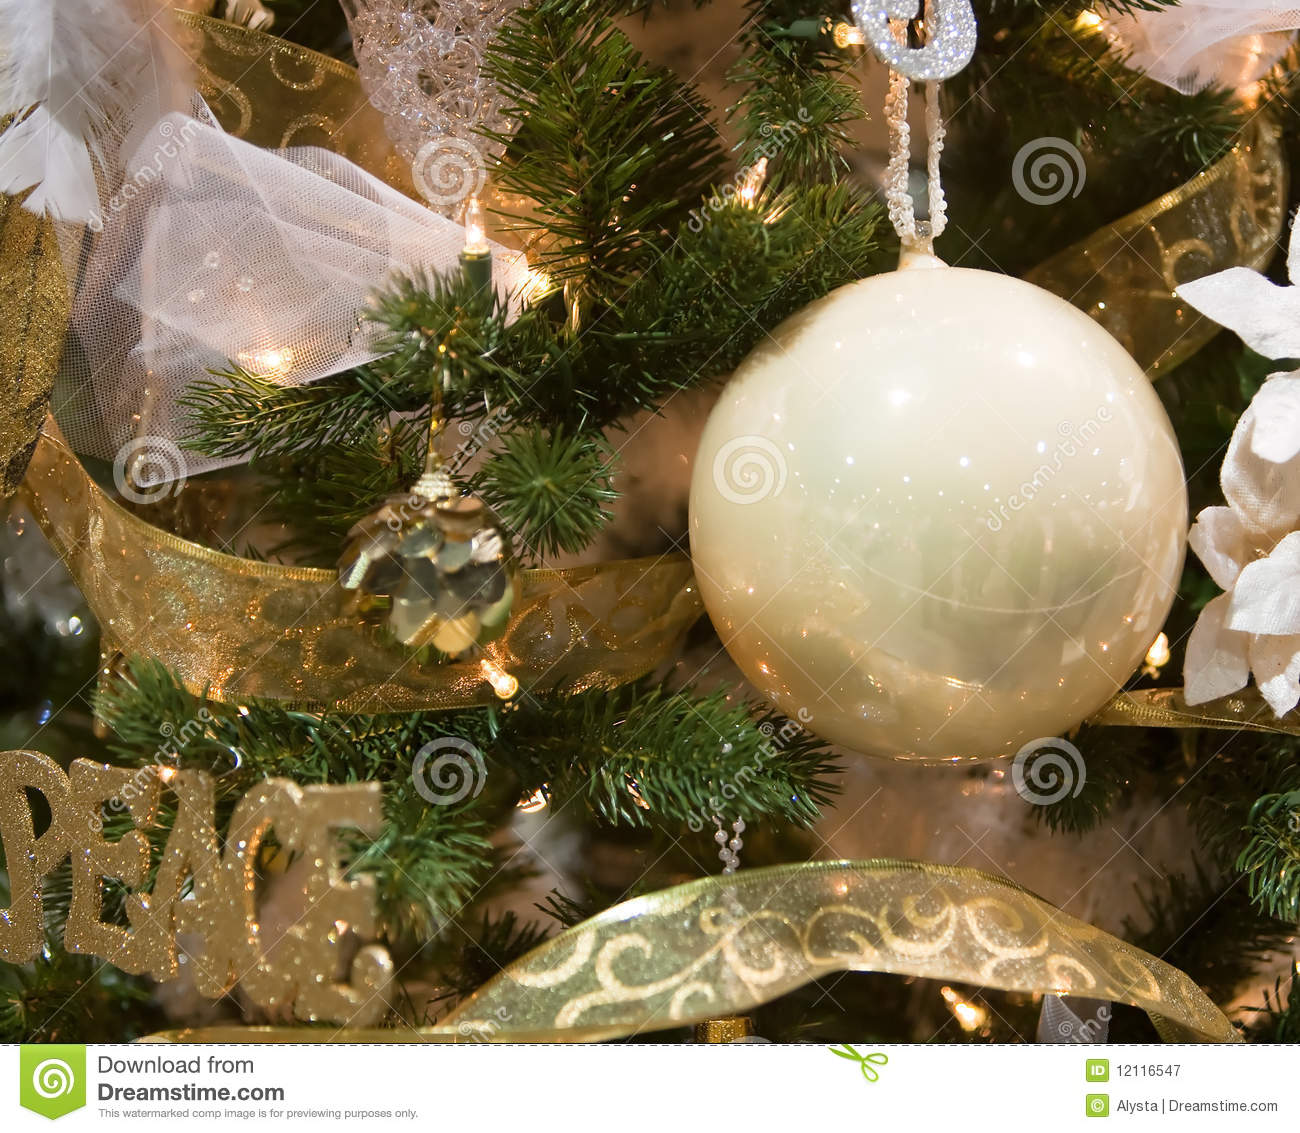 white and gold christmas tree ornaments - White And Gold Christmas Ornaments